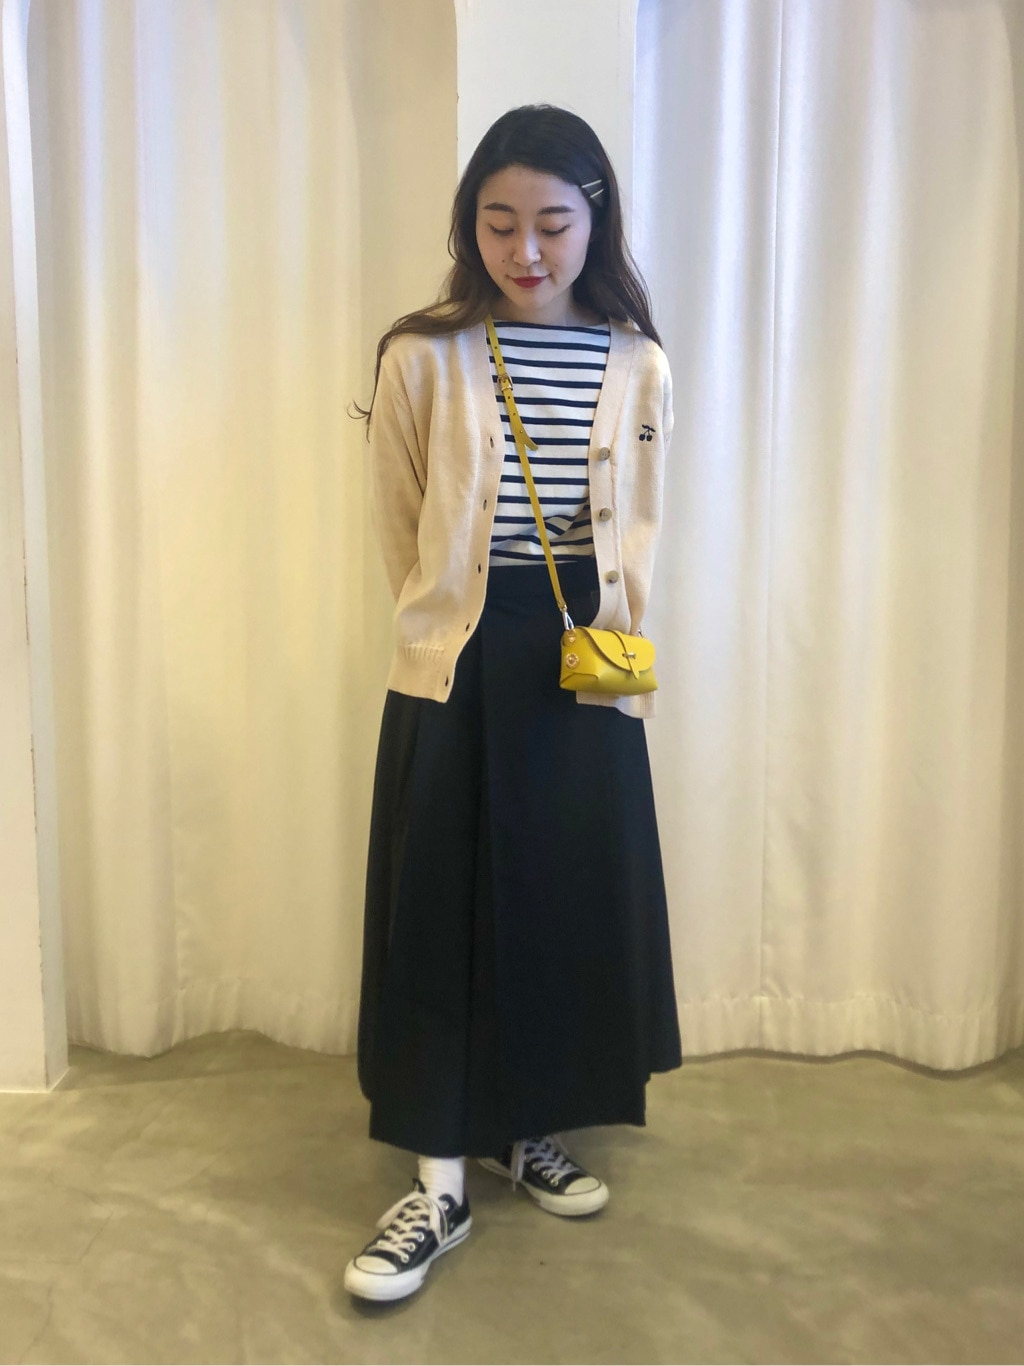 Dot and Stripes CHILD WOMAN ラフォーレ原宿 身長:153cm 2021.02.05